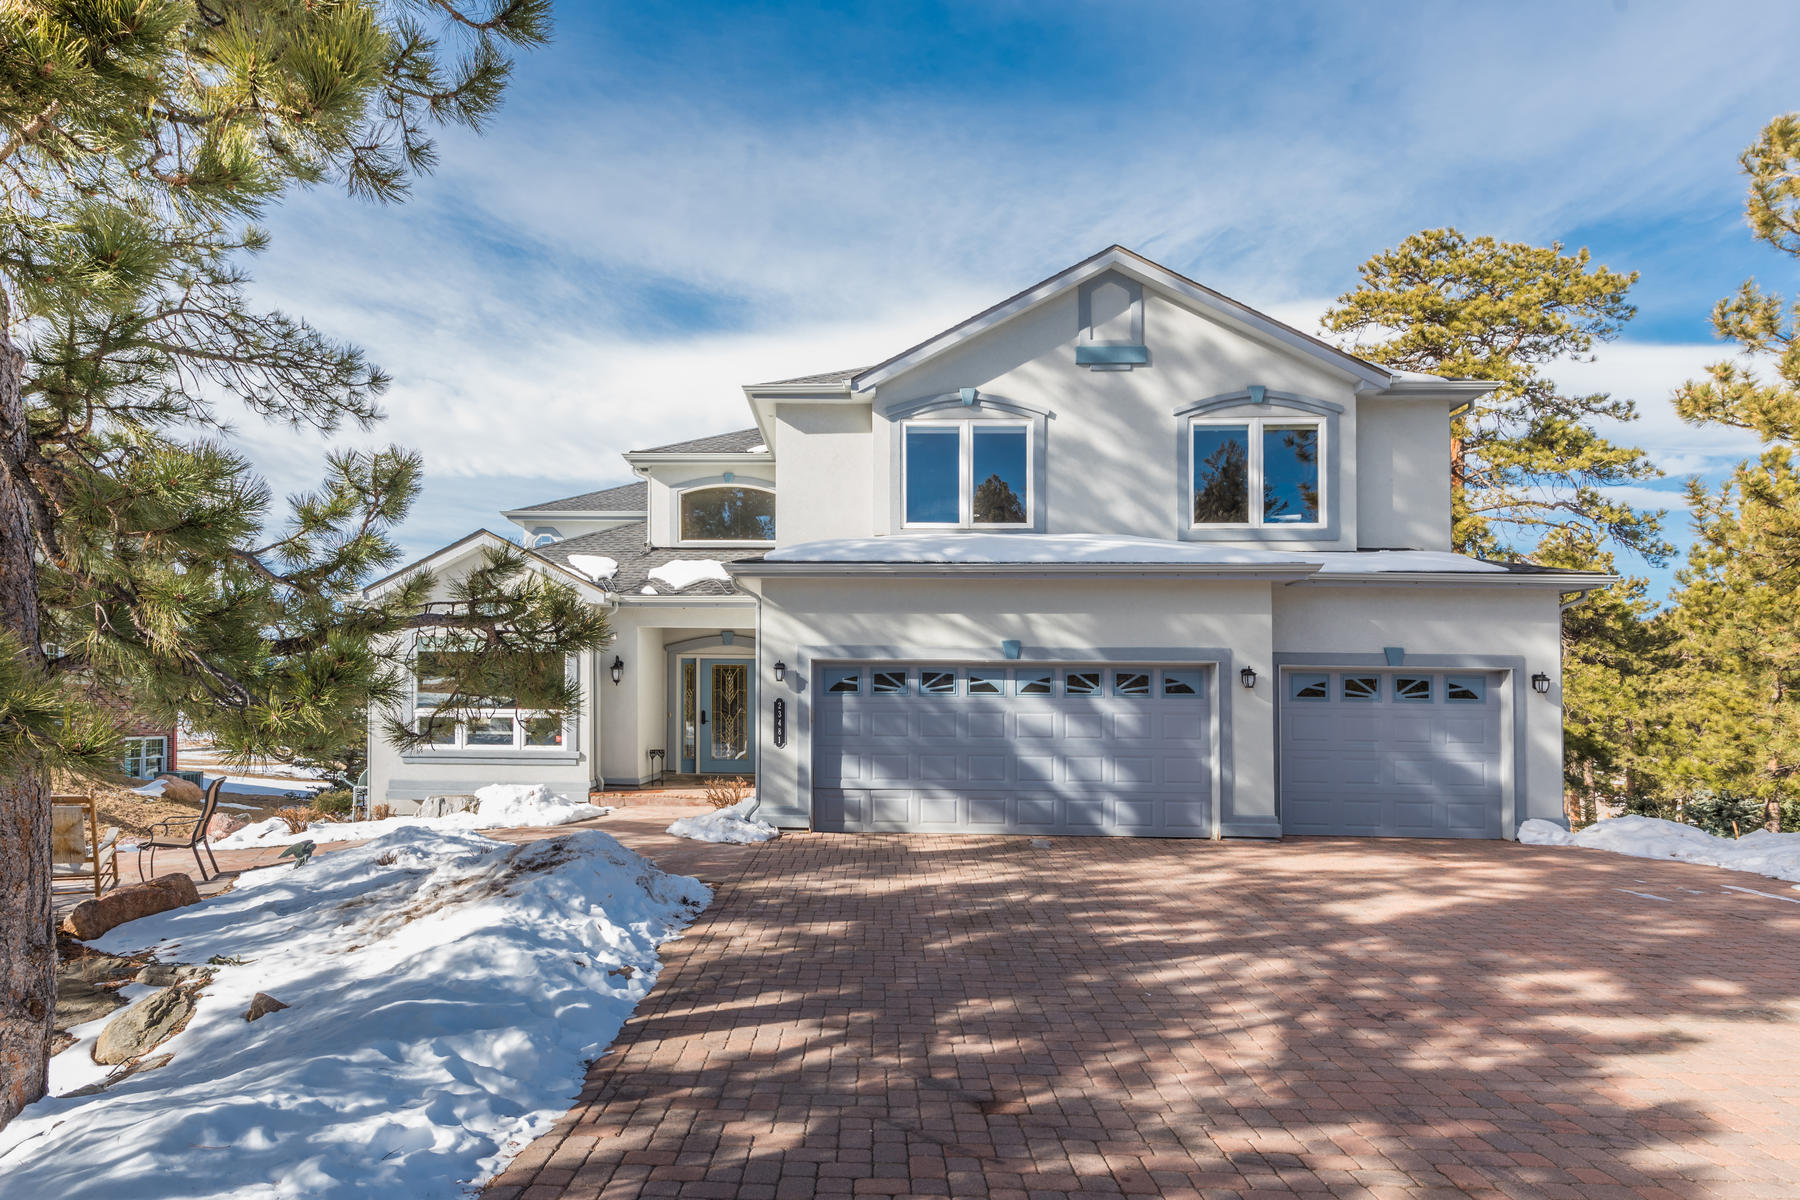 Single Family Home for Sale at Mountain Contemporary Home on 1.27 Acres with Expansive Views 23481 Morning Rose Drive Golden, Colorado 80401 United States